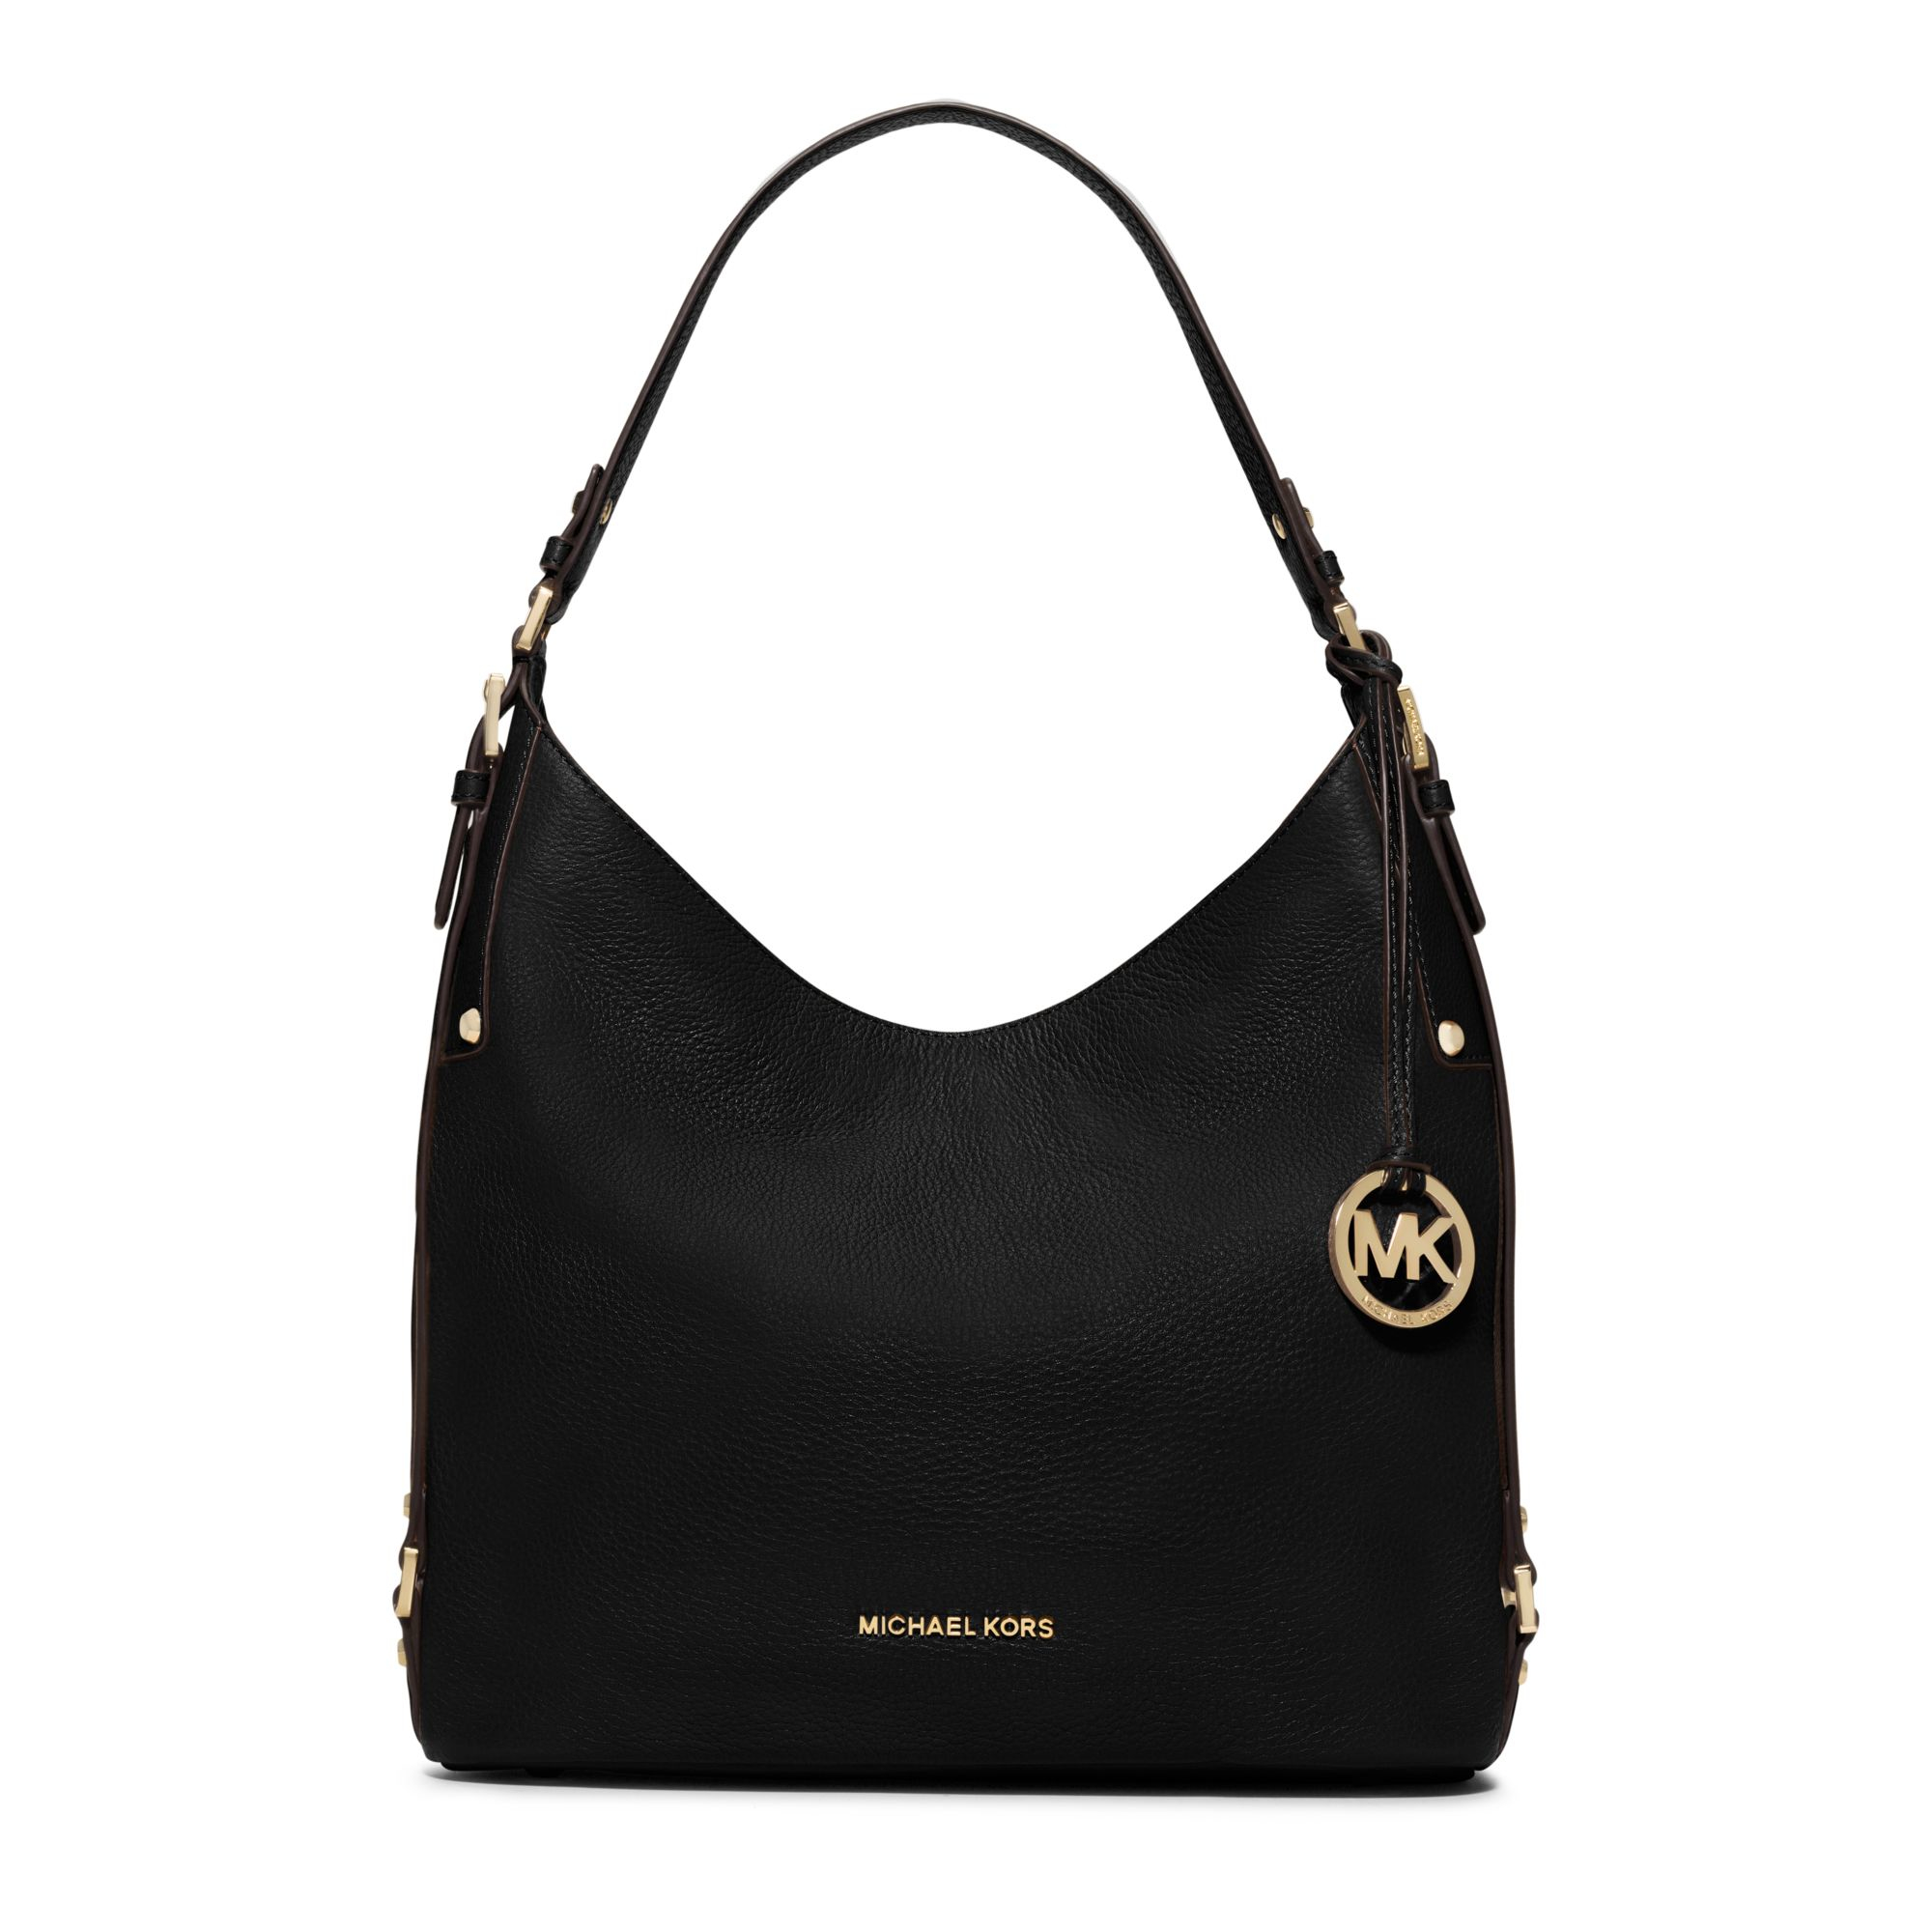 Michael kors Bedford Large Leather Shoulder Bag in Black | Lyst